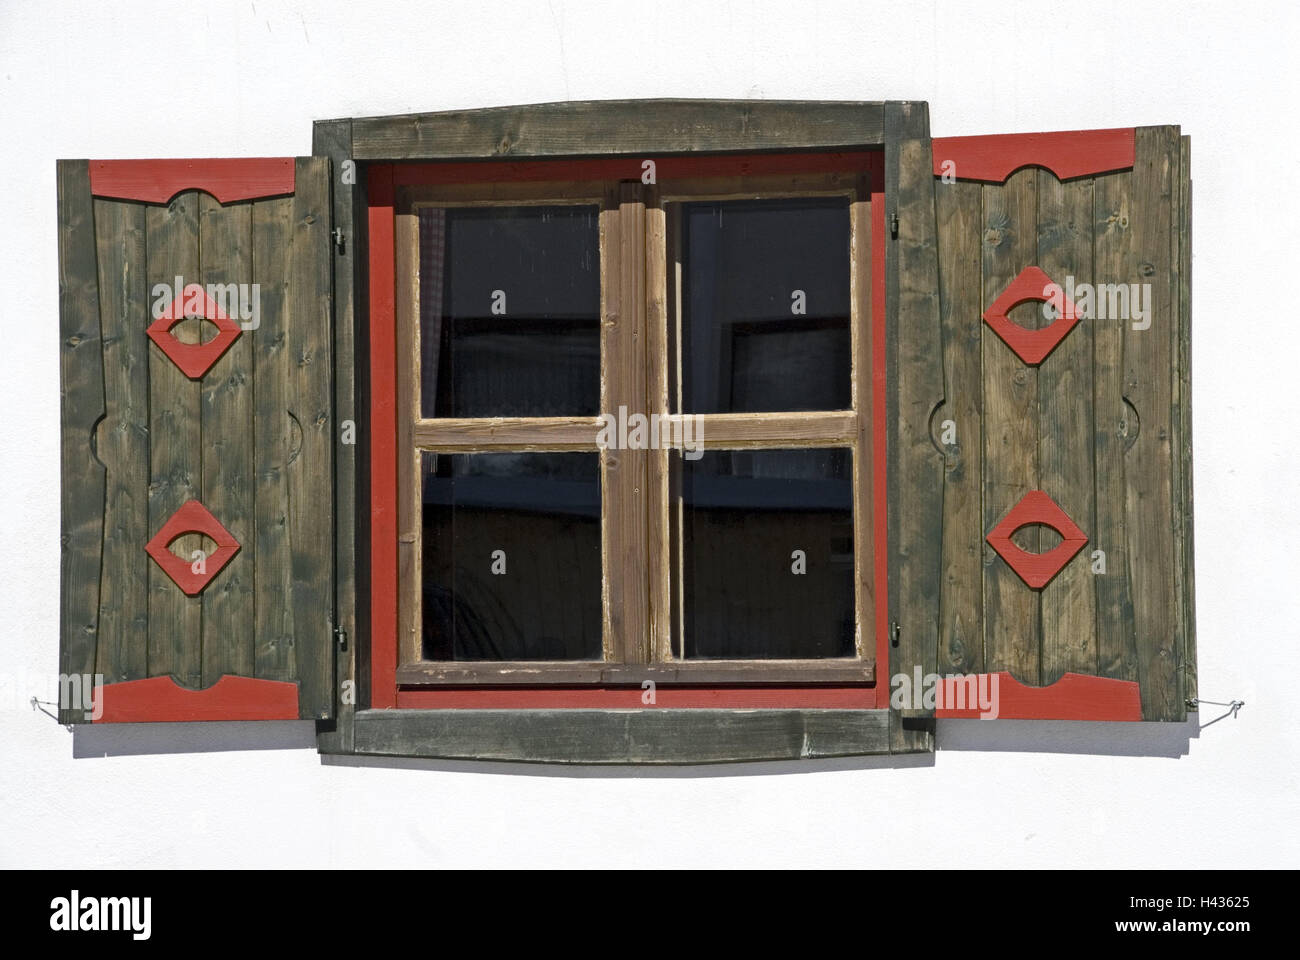 Farmhouse, detail, window, shutters, Austria, Styria, Ramsau in the roof stone, window, shutters, decorates, red, Stock Photo